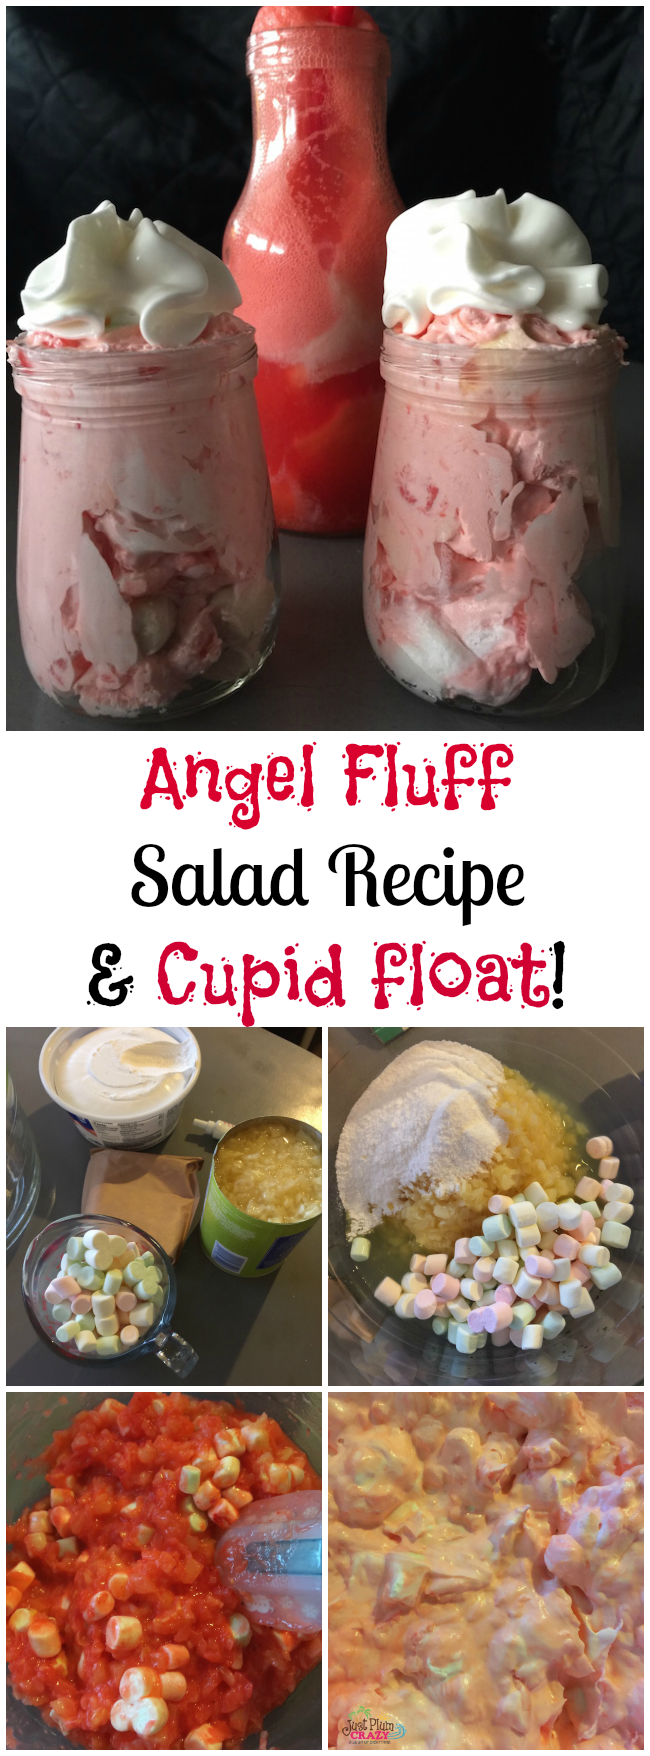 What's great about the Angel Fluff Salad Recipe is that you can make it any color you want for any holiday! I made it pink for Valentine's Day.